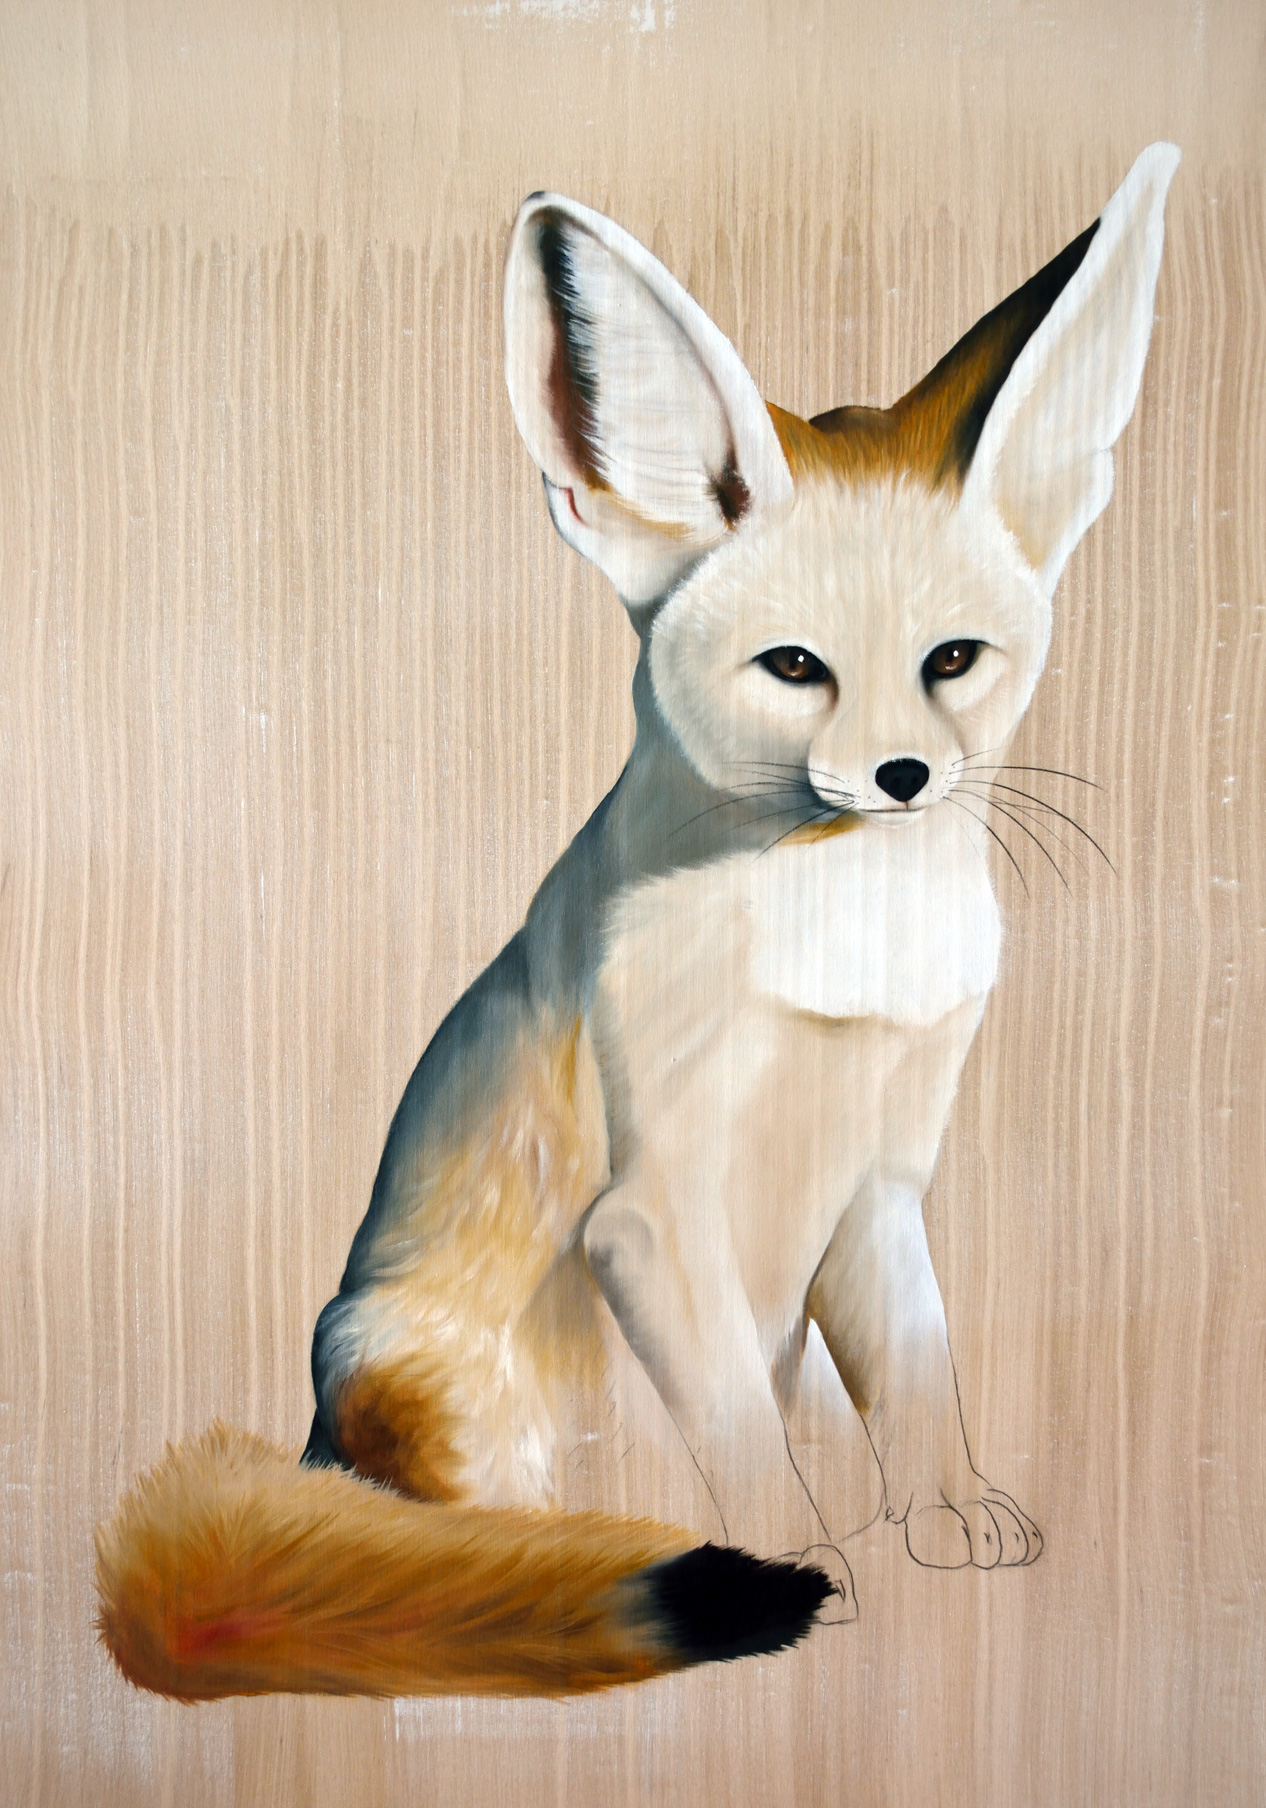 VULPUS-ZERDA Desert-fox-vulpus-zerda Thierry Bisch painter animals painting art decoration hotel design interior luxury nature biodiversity conservation